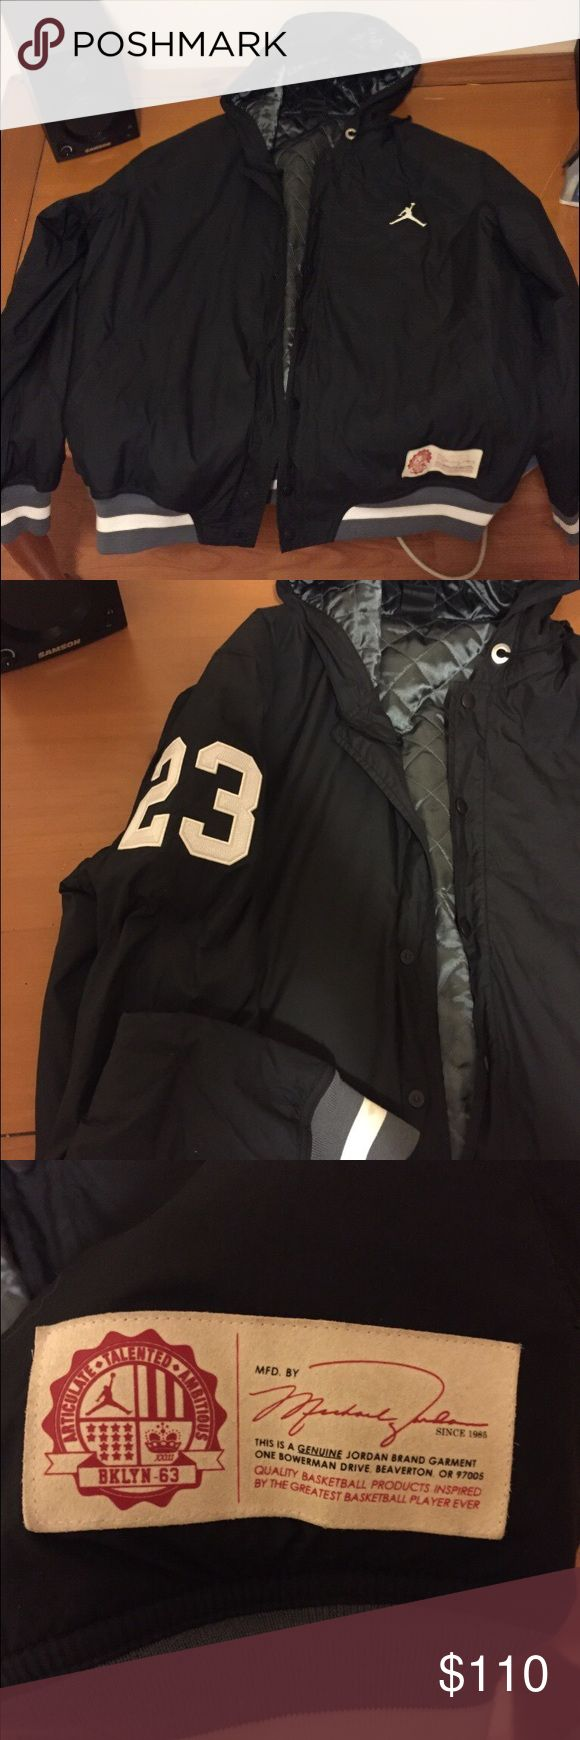 Black Michael Jordan Jacket Like new Jordan jacket only worn a half full of times! Treat very well and is in mint condition! Great gift for all of those Michael Jordan fans! Michael Jordan  Jackets & Coats